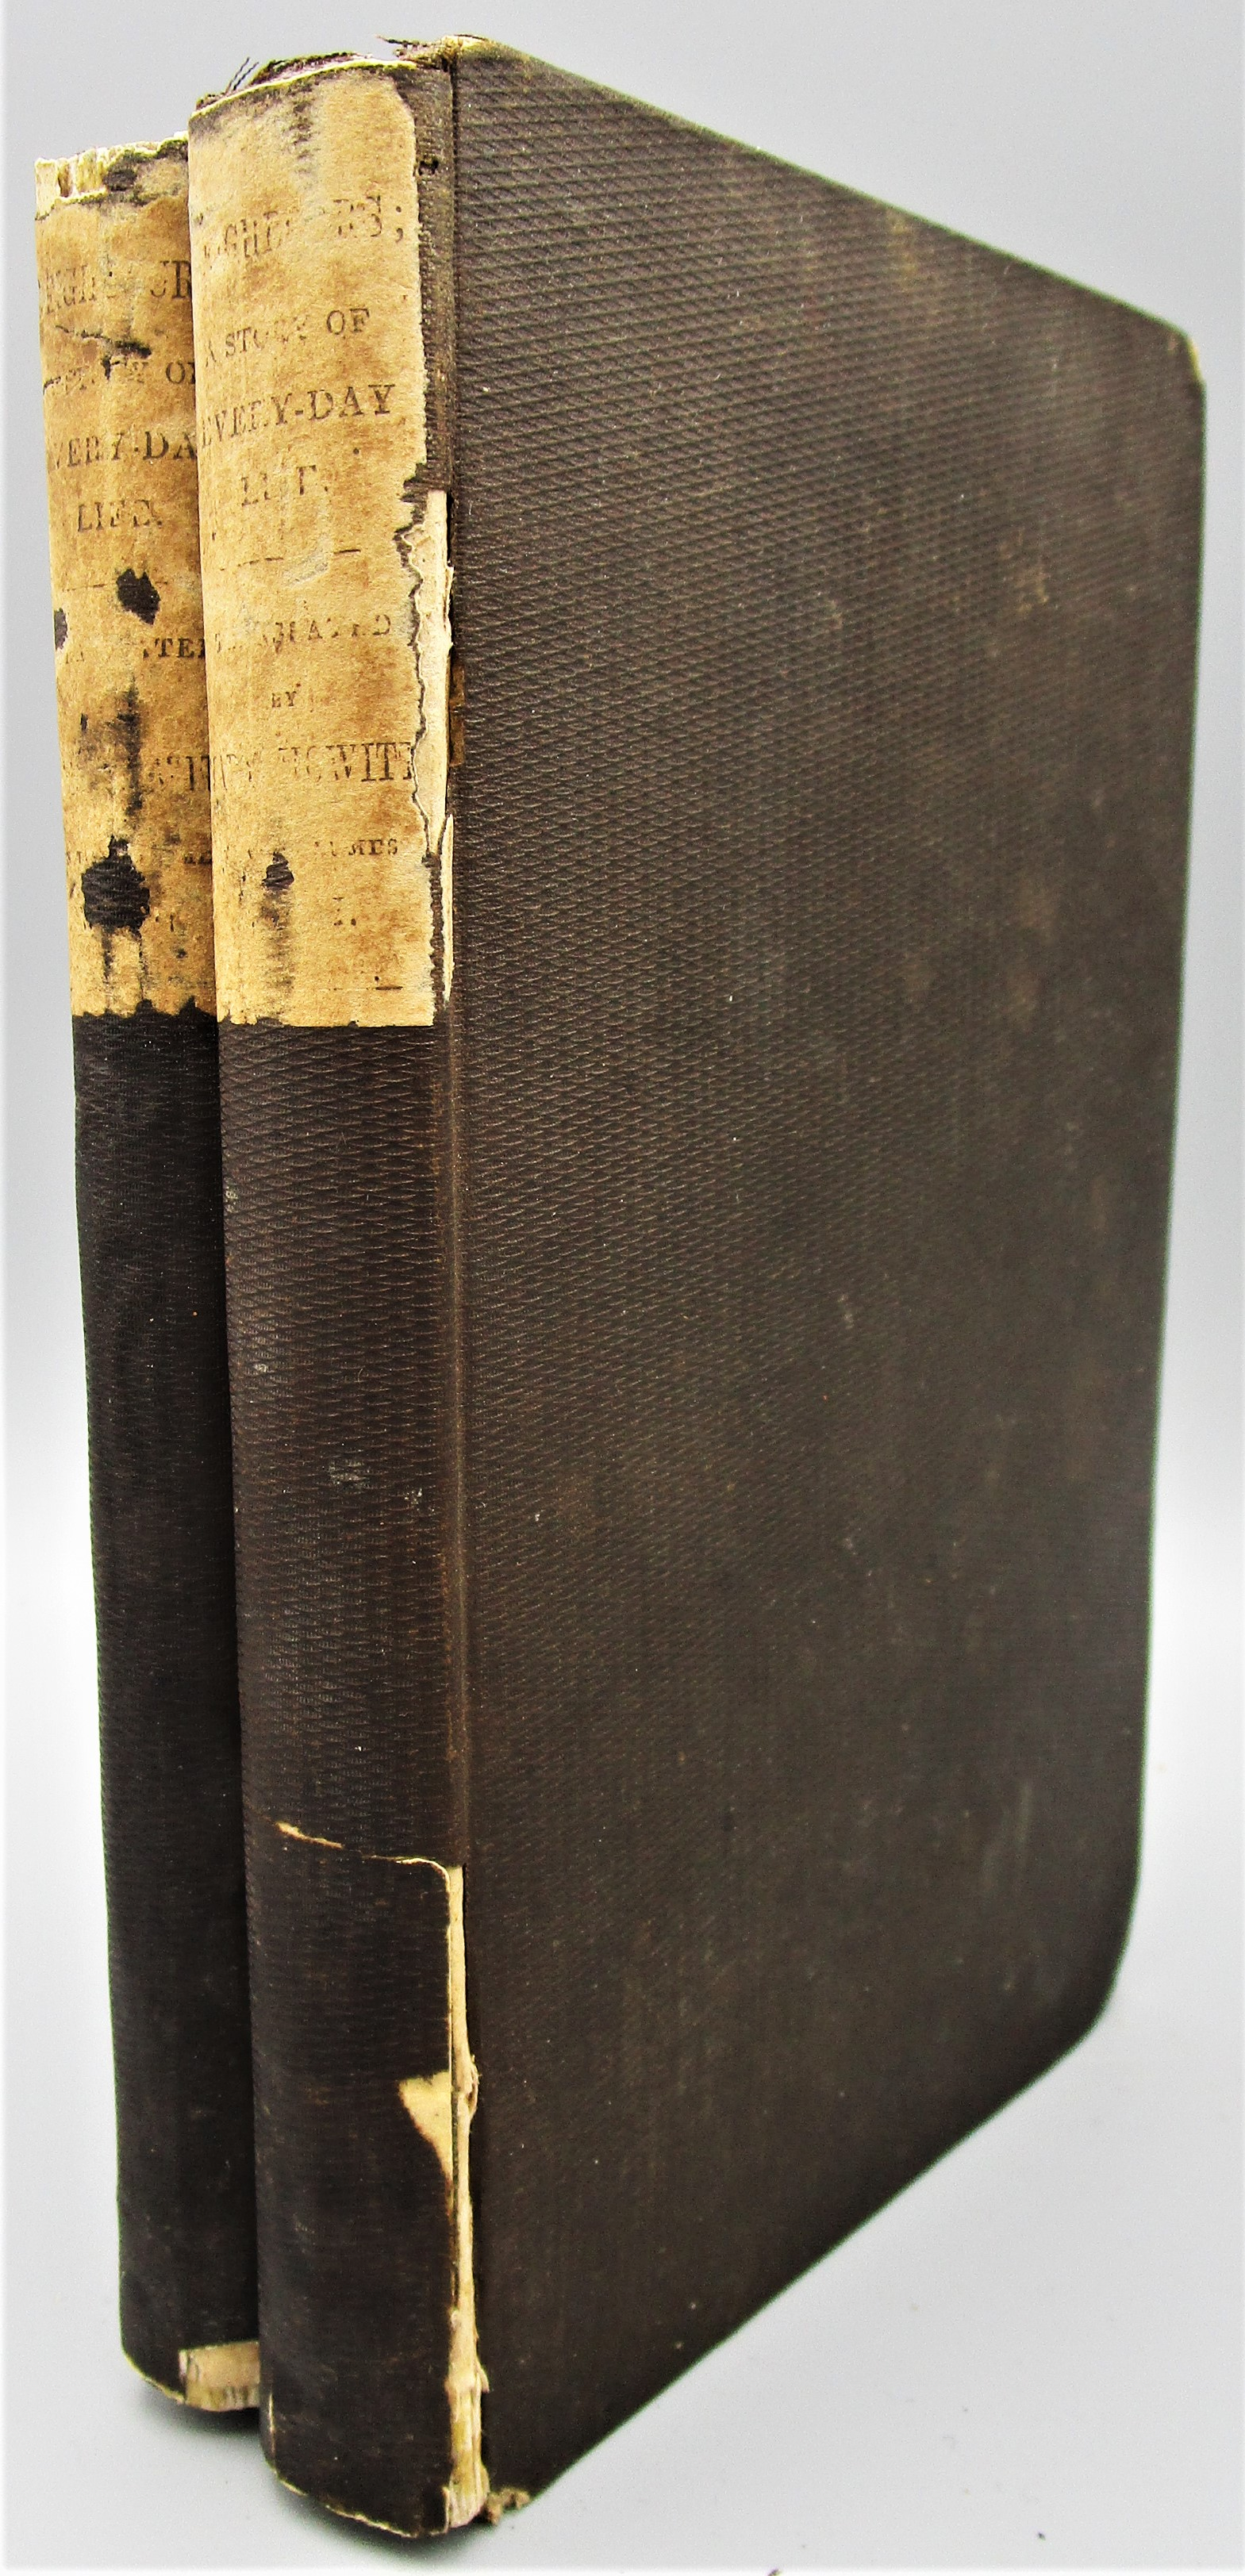 THE NEIGHBOURS: A STORY OF EVERYDAY LIFE, by Frederika Bremer - 1843 [2 Vols]